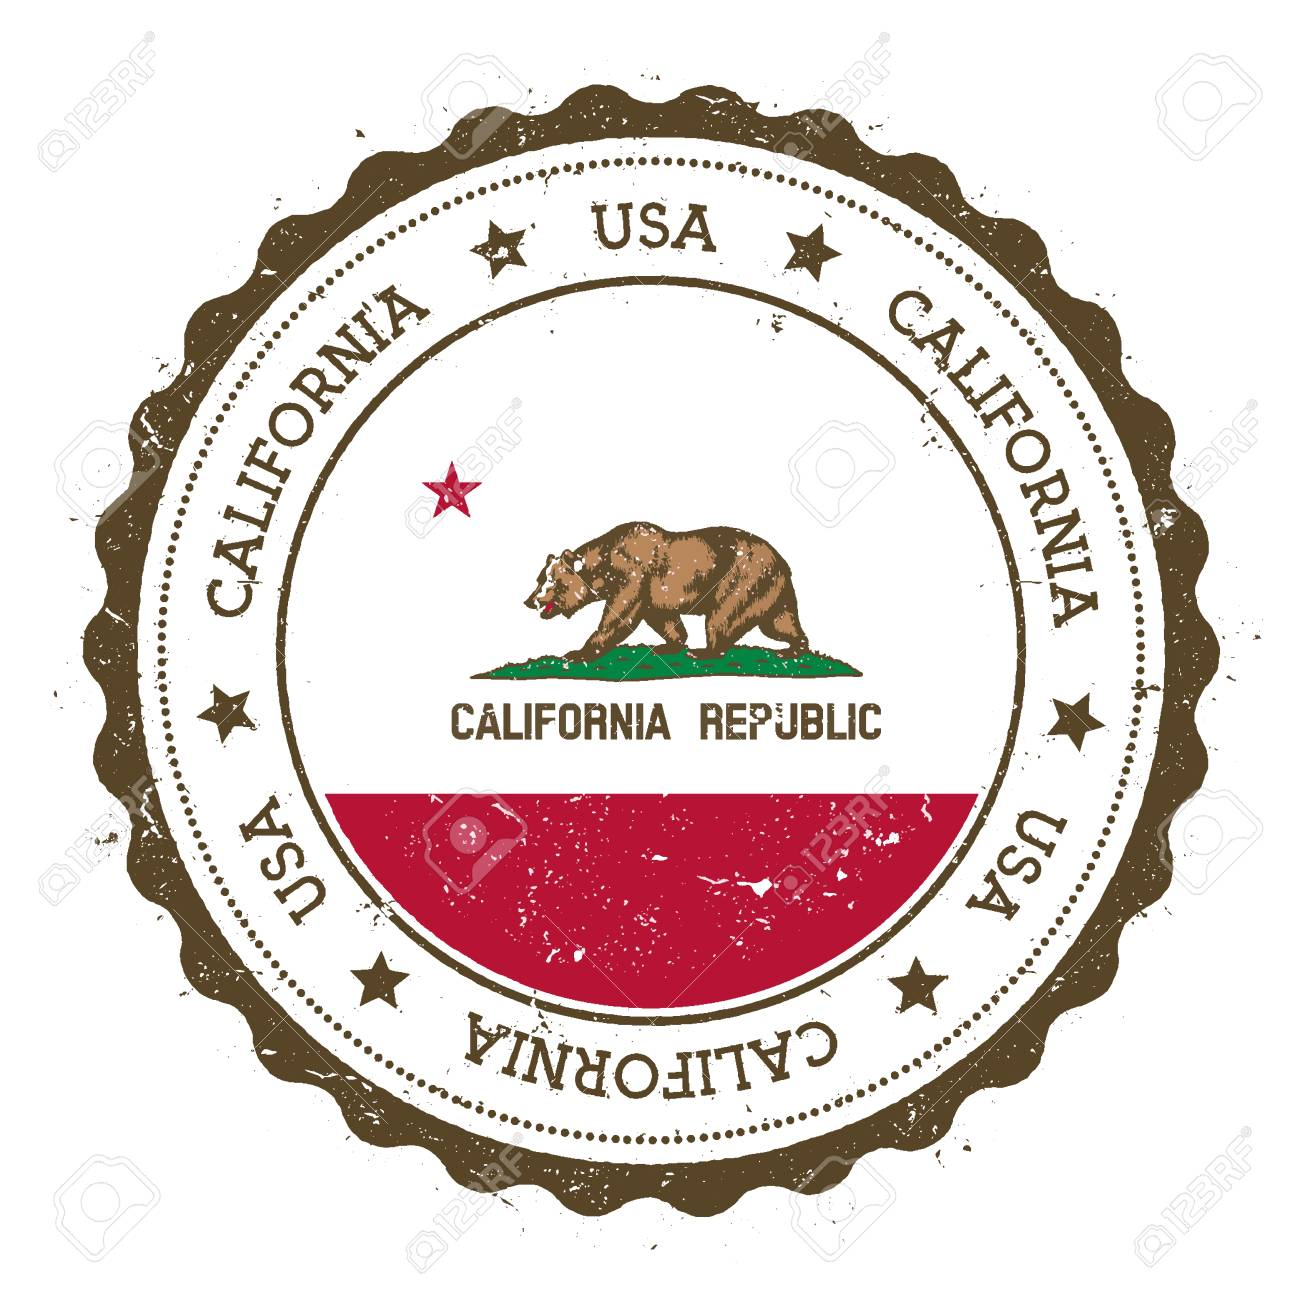 California Flag Badge Grunge Rubber Stamp With Vintage Travel Circular